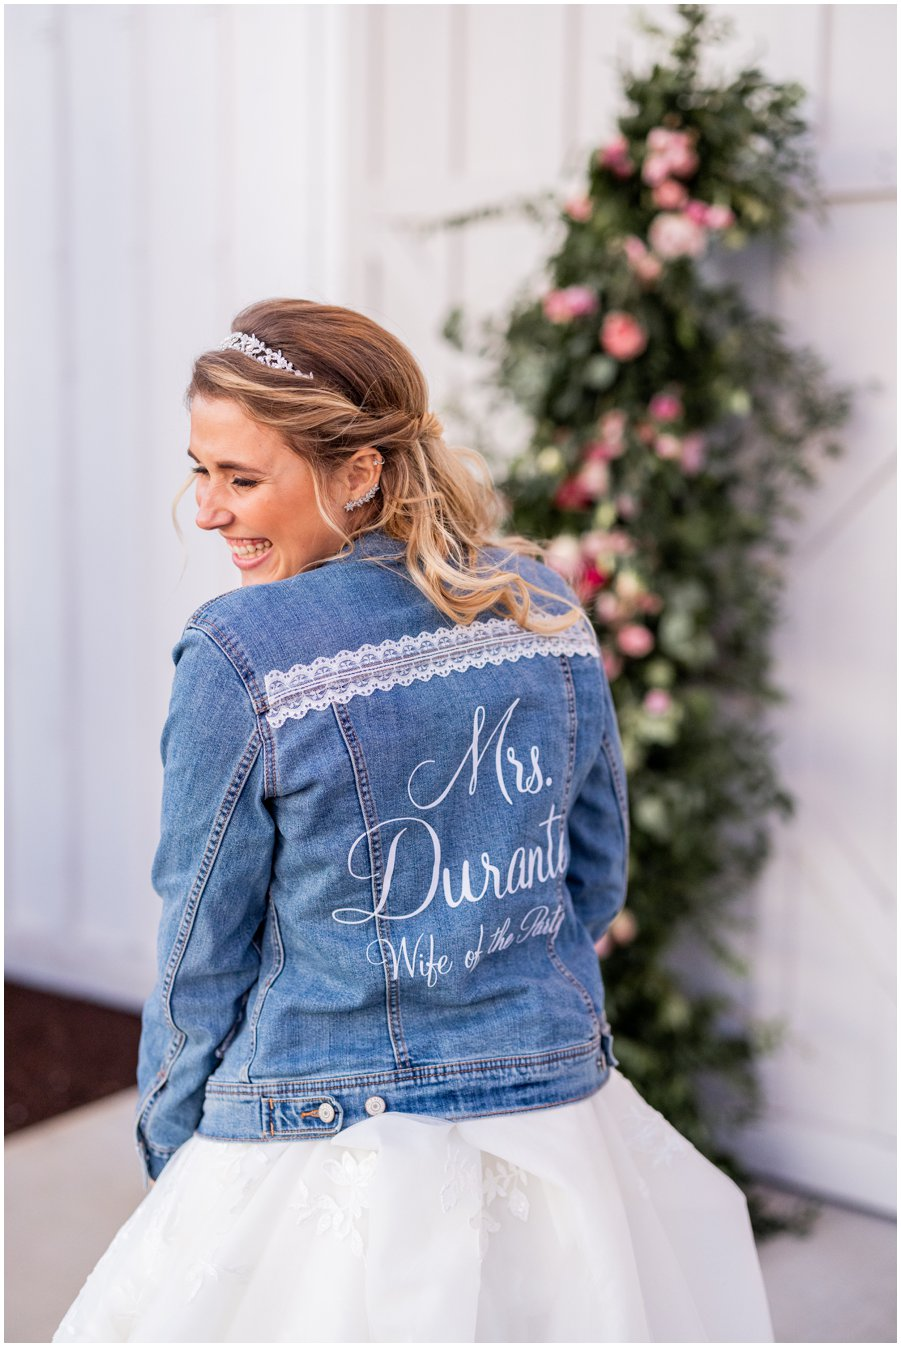 Bride wears Personalized Jean Jacket at her Gorgeous and Rustic Barn Wedding at the Kylan Barn.